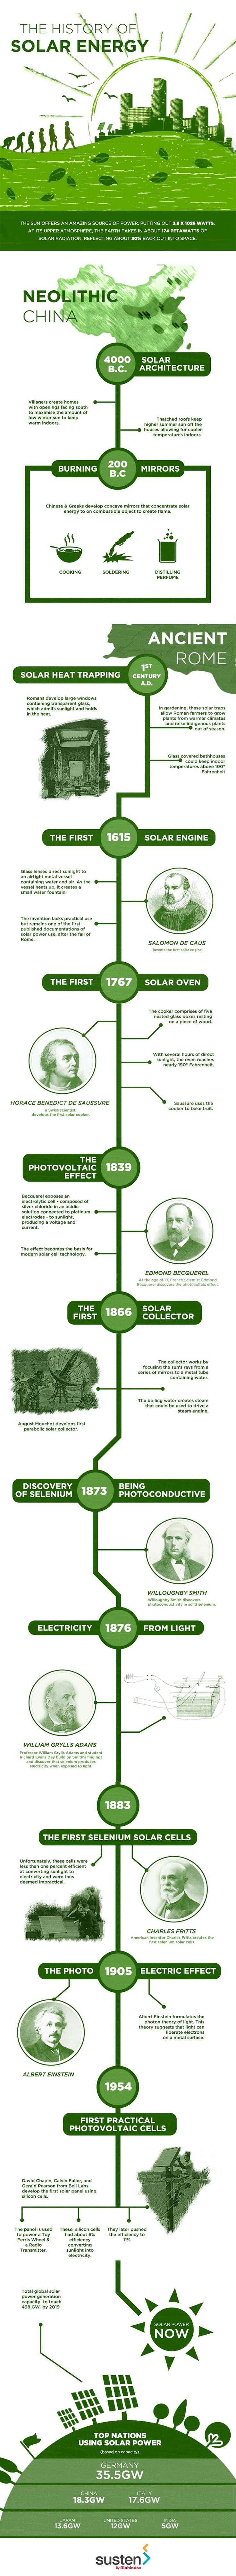 Solar technology has evolved over the longest duration. Here is an overview of how Solar Power has come to be the way we know it today.